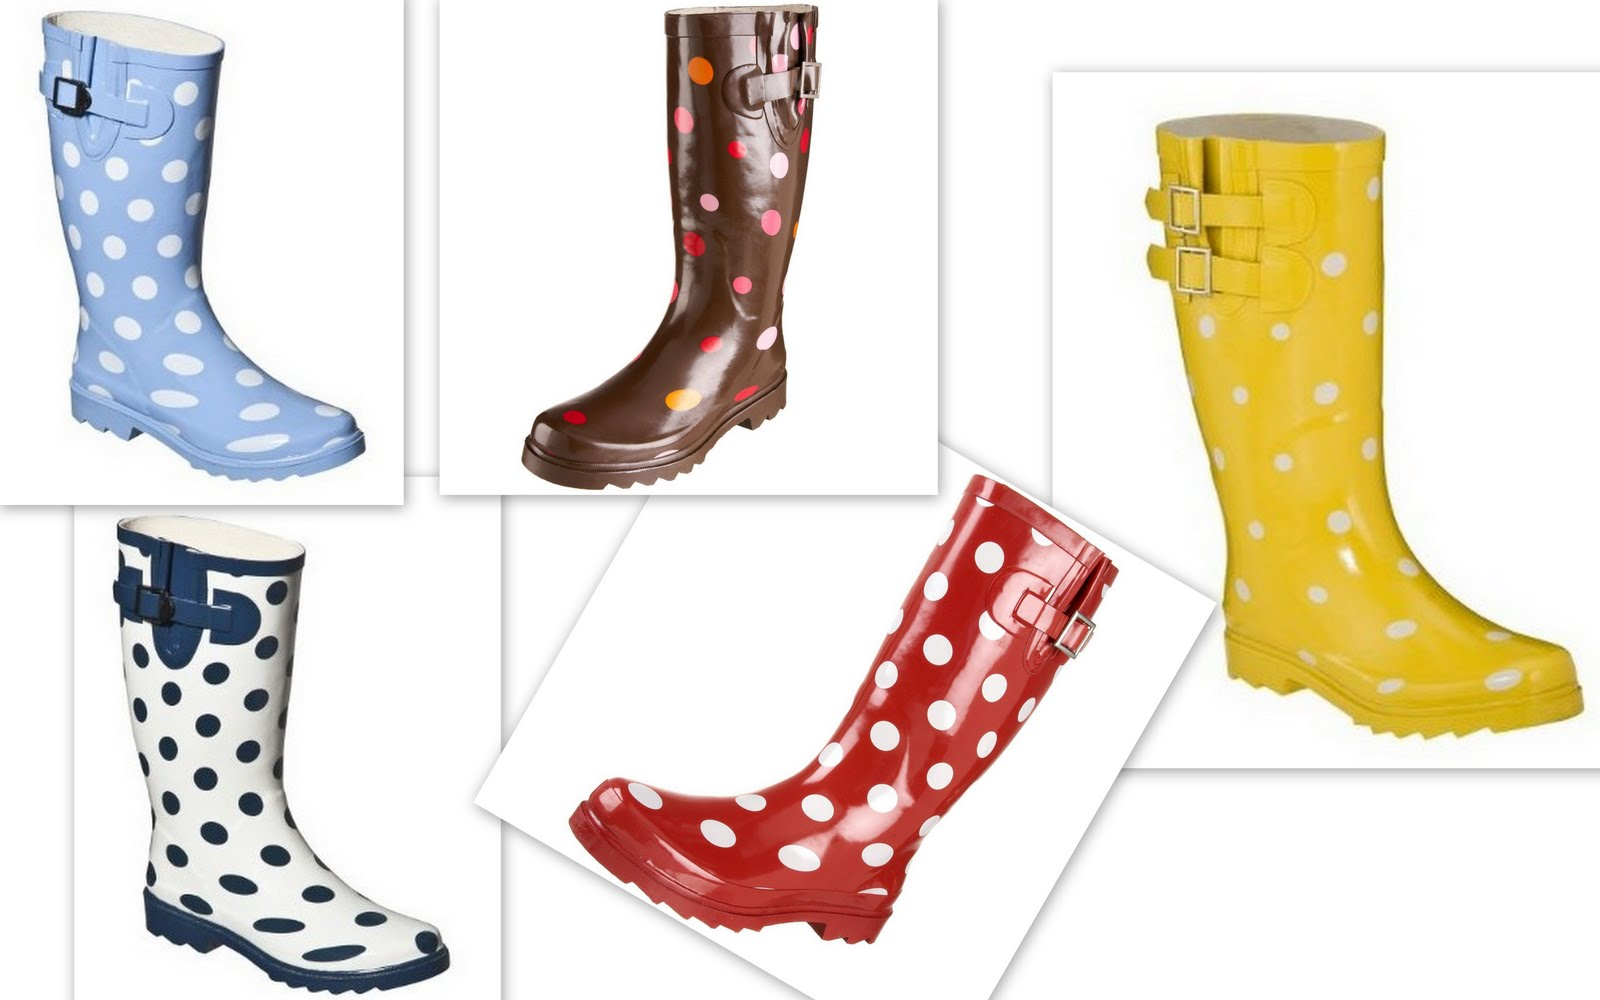 Gloomy clipart rainy day Rain Boots Here Buy Puddle